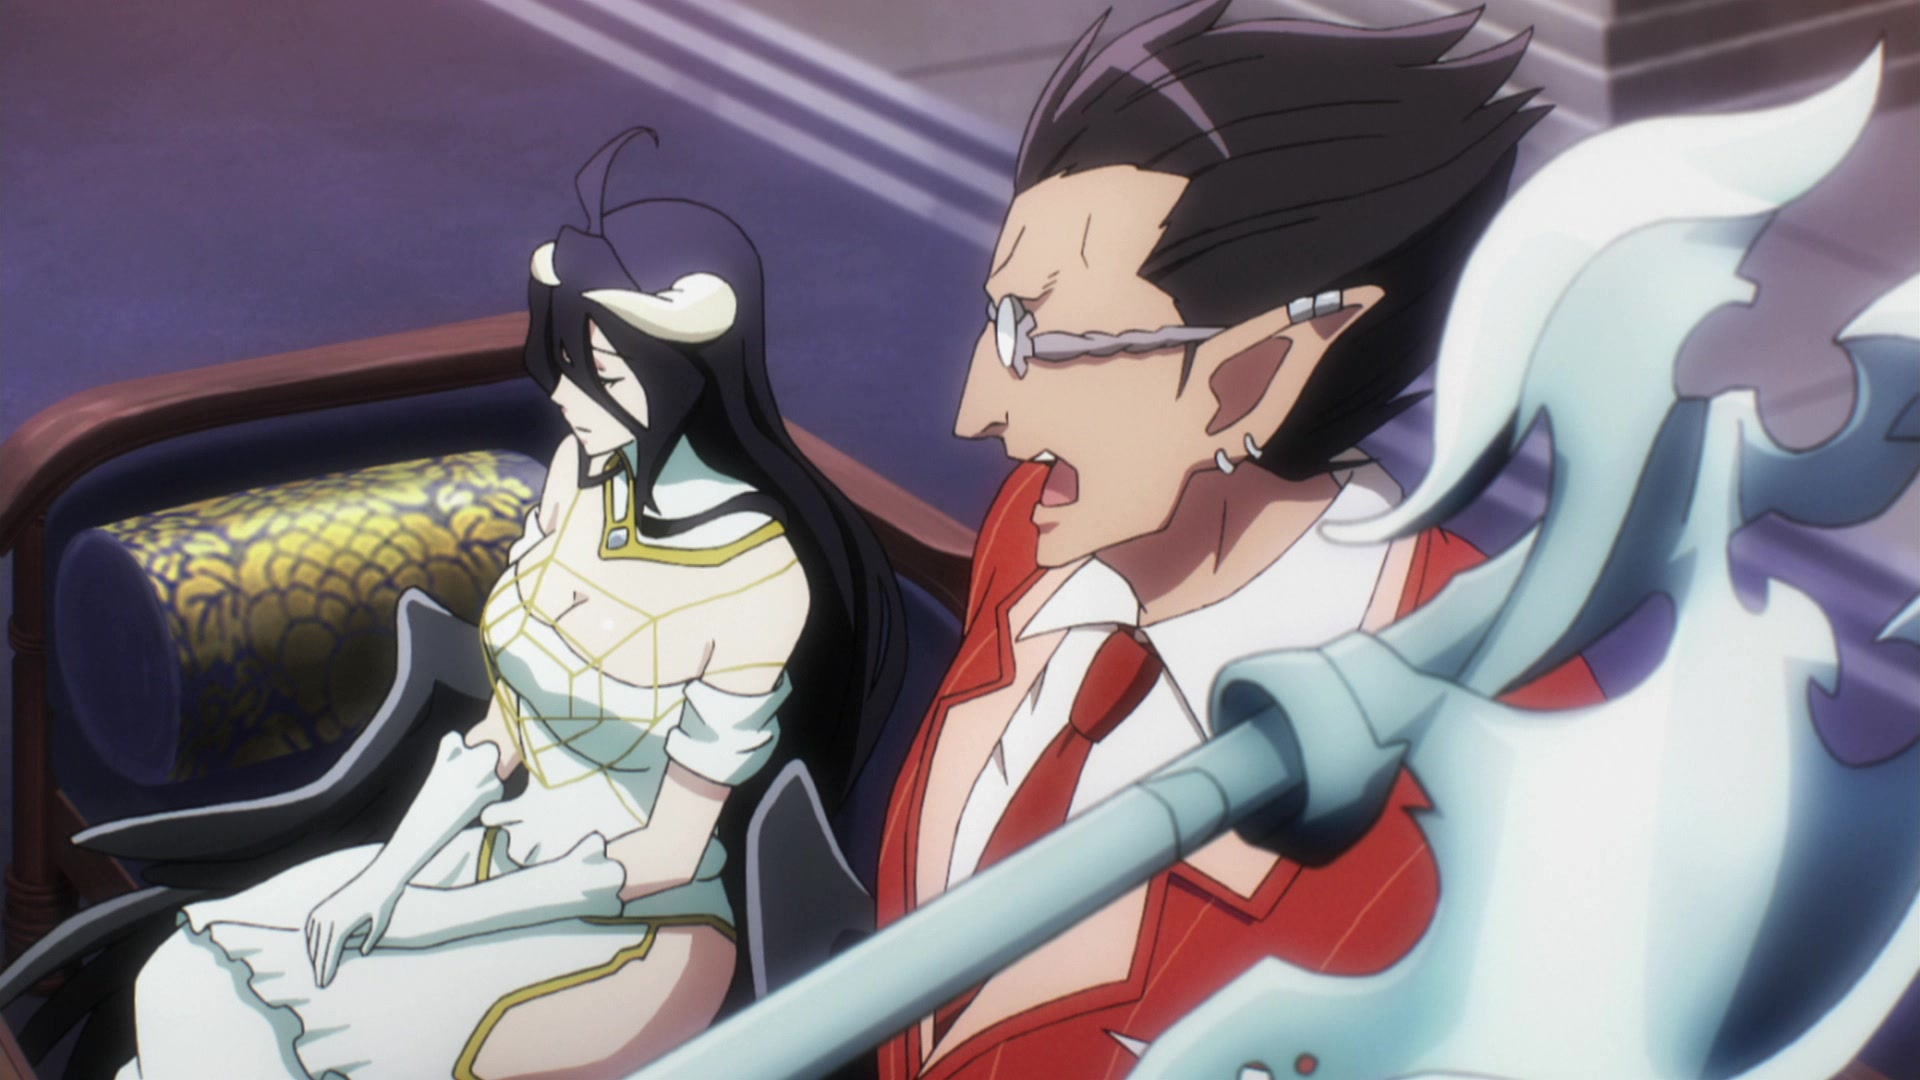 Overlord Episode 12, The Bloody Valkyrie, - Watch on Crunchyroll